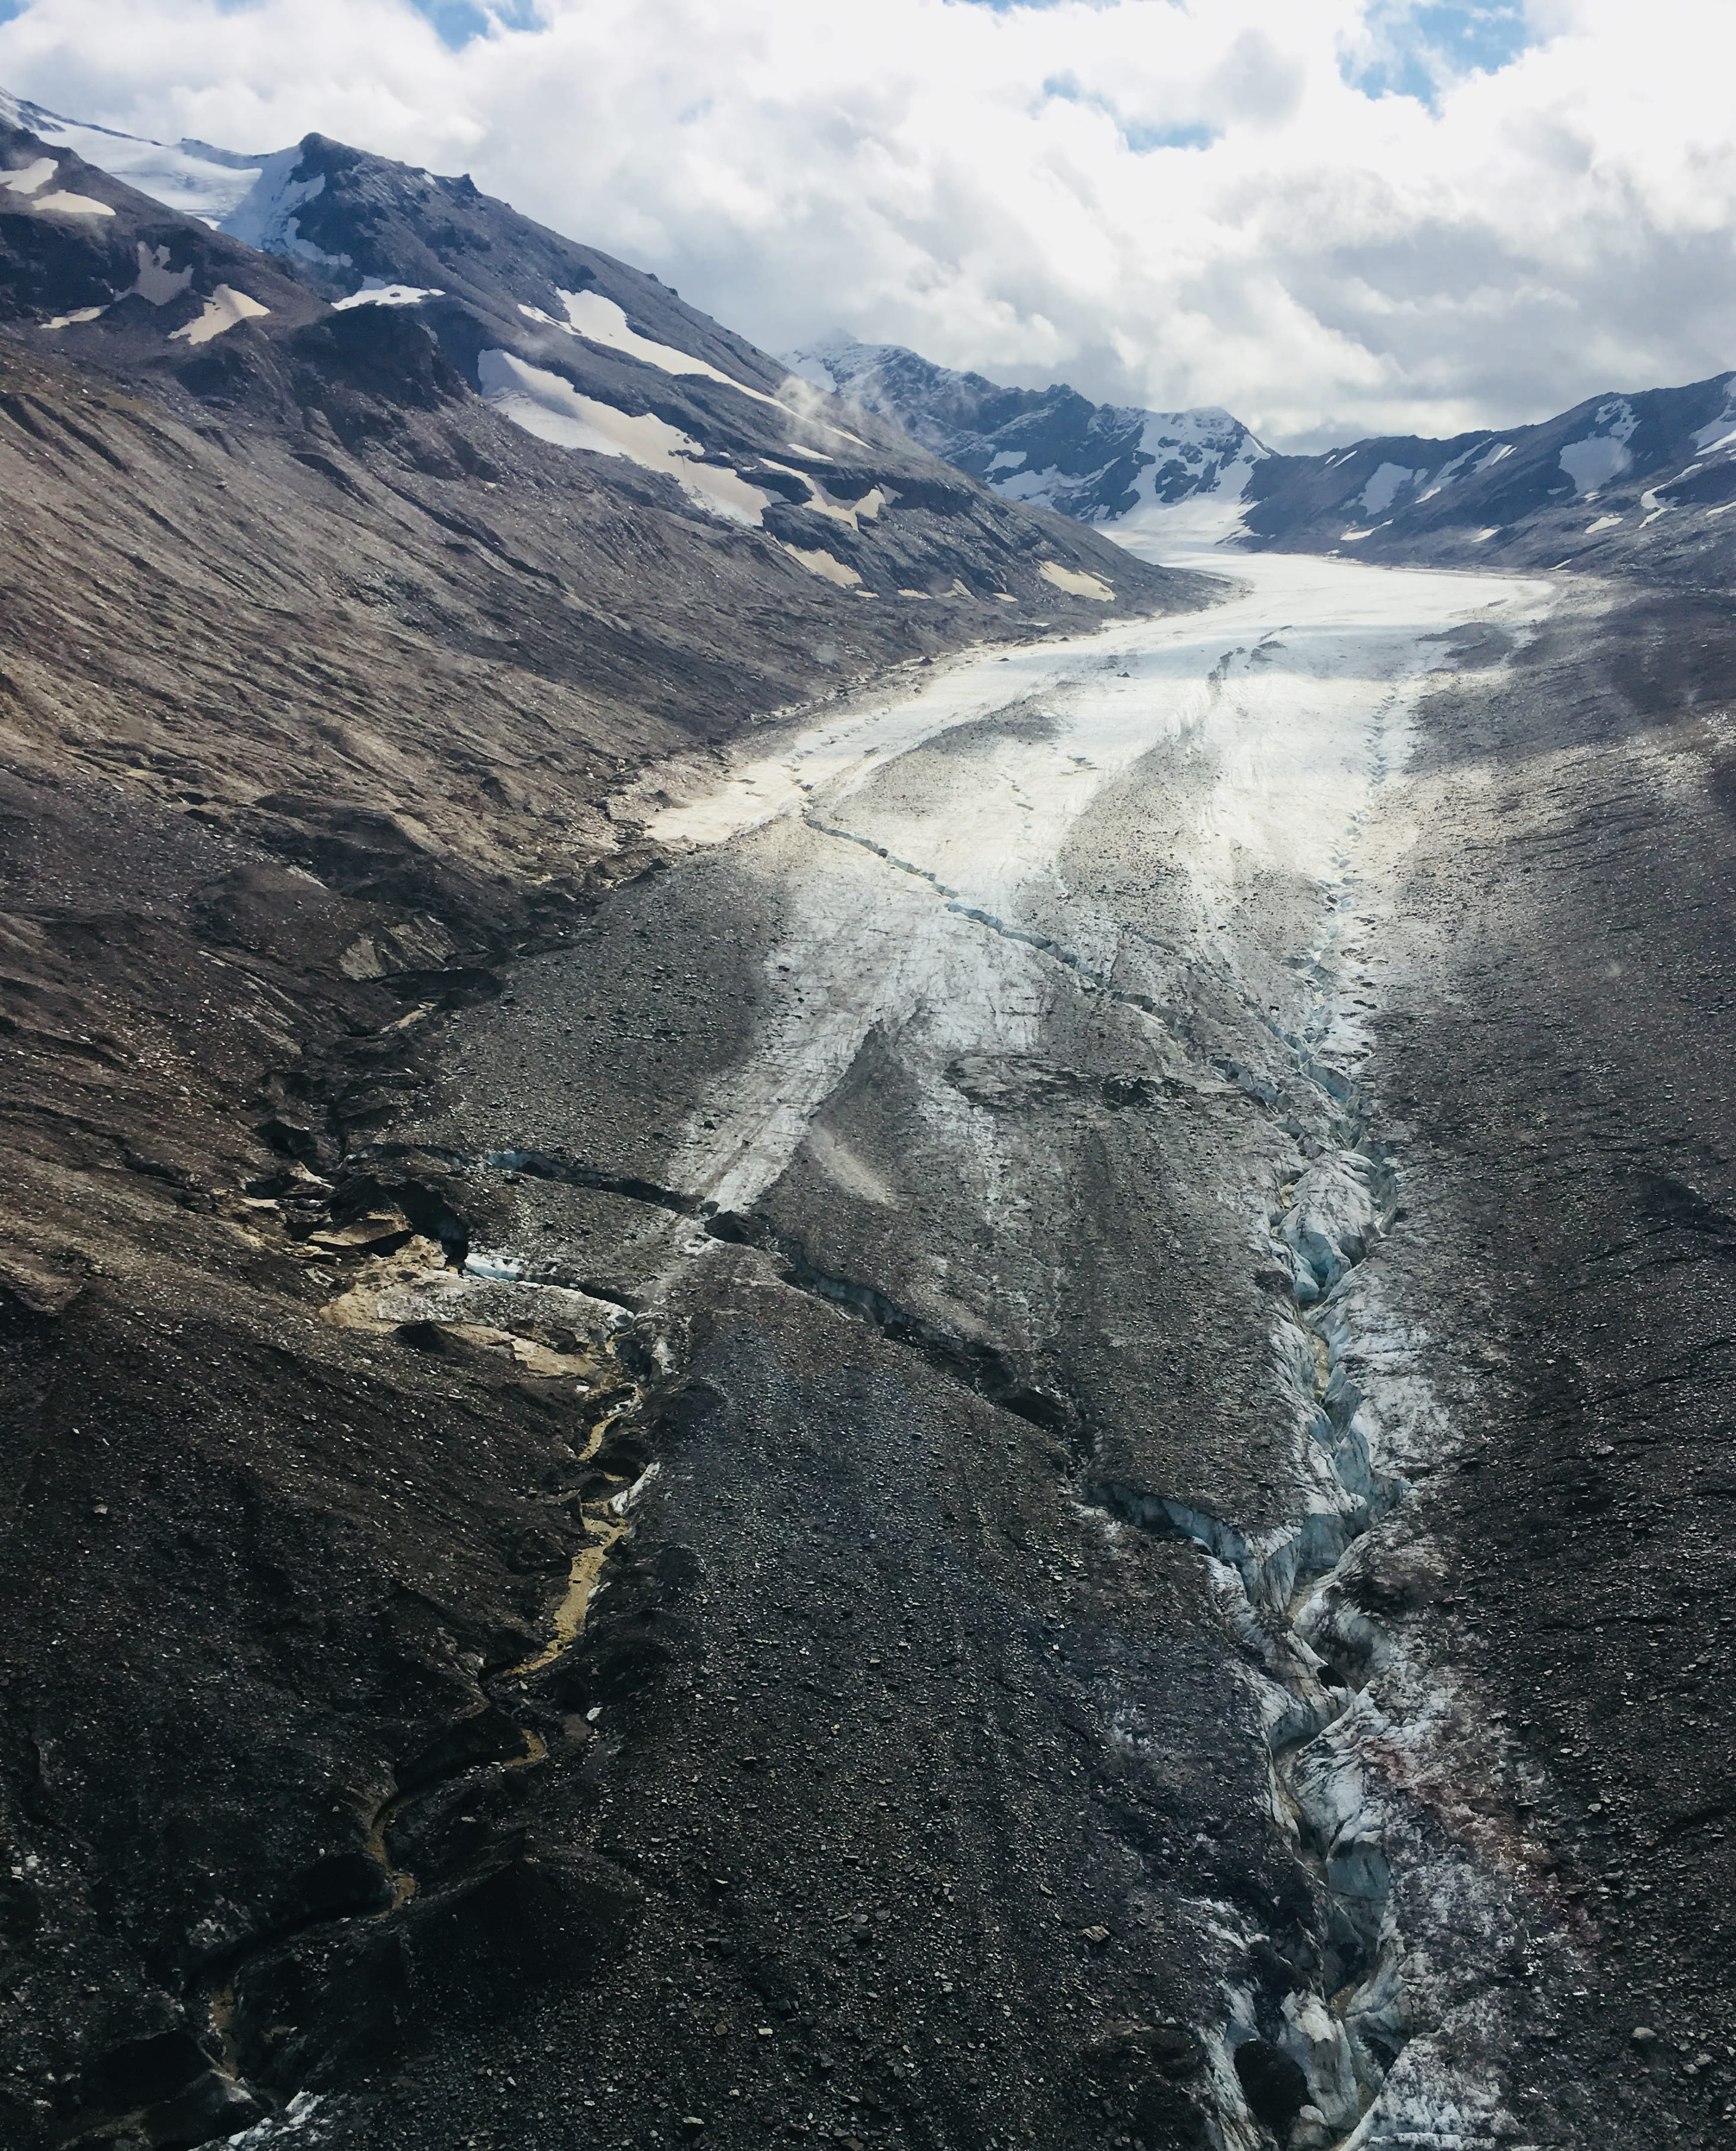 Jarvis Glacier and its debris field in August 2018. The bare ice surface has retreated over one mile since the late 1940's. P.C. A. Liljedahl